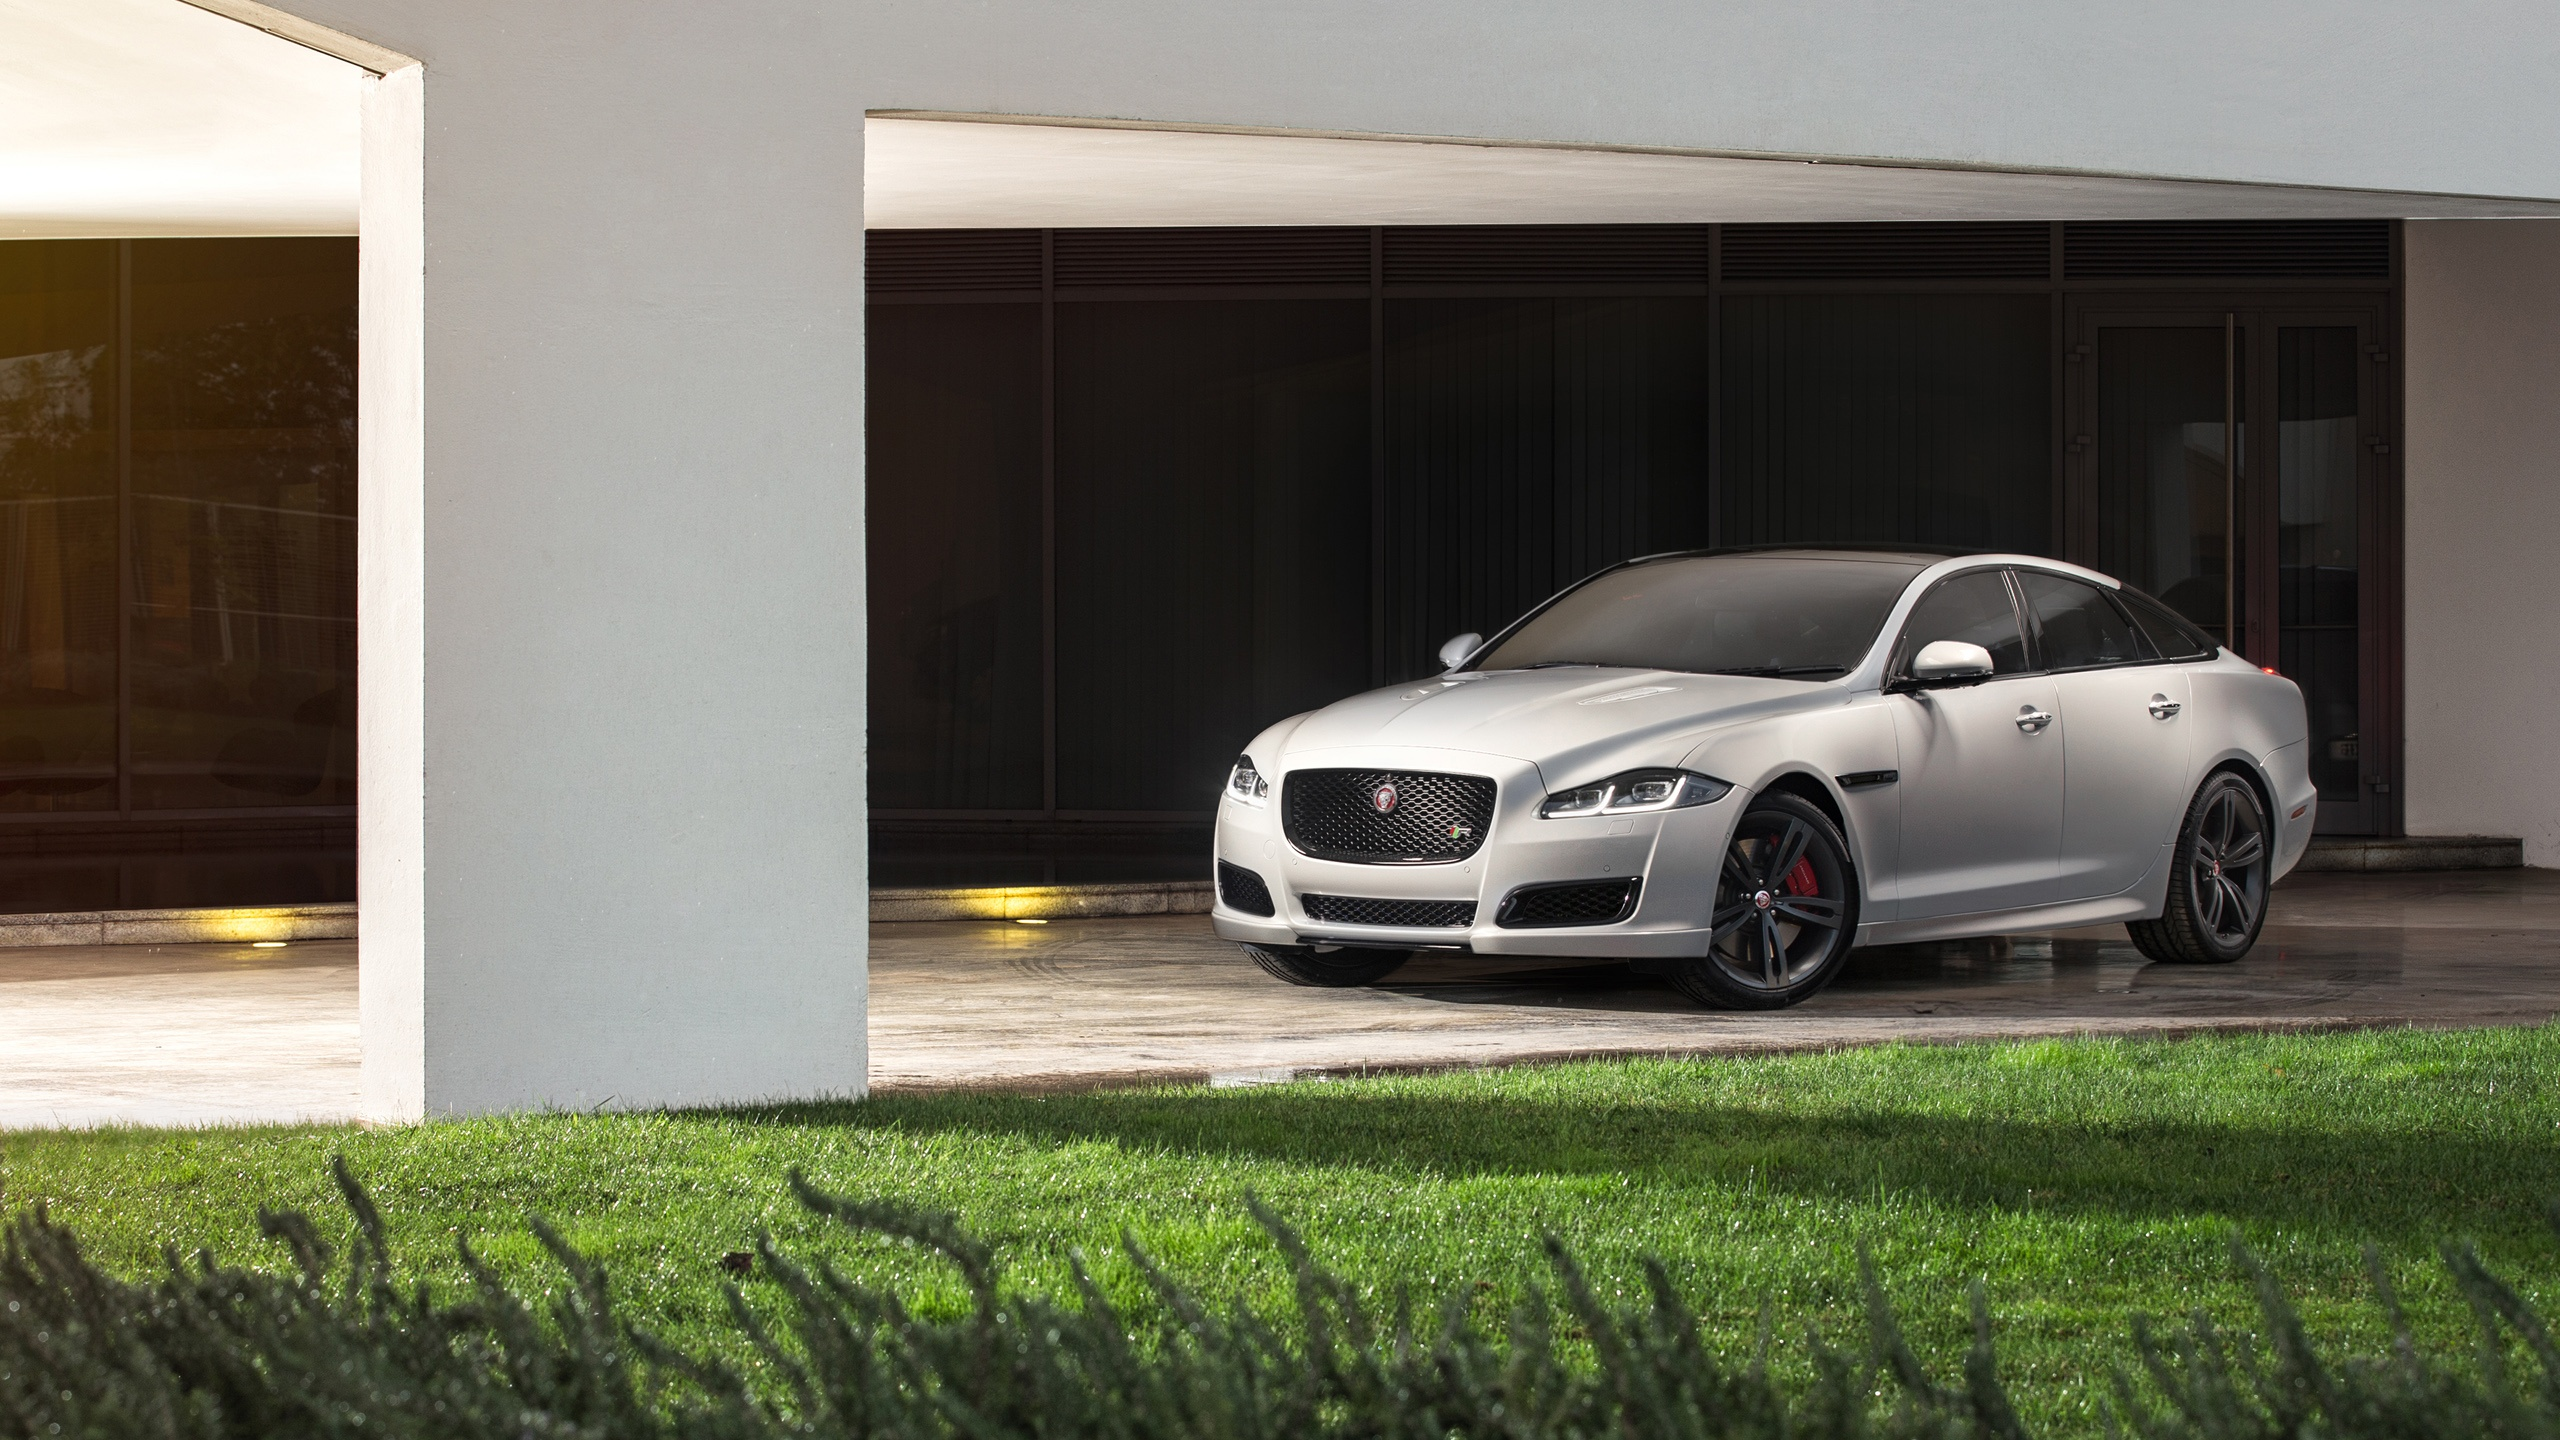 2015 jaguar xj x351 wallpaper hd 48594